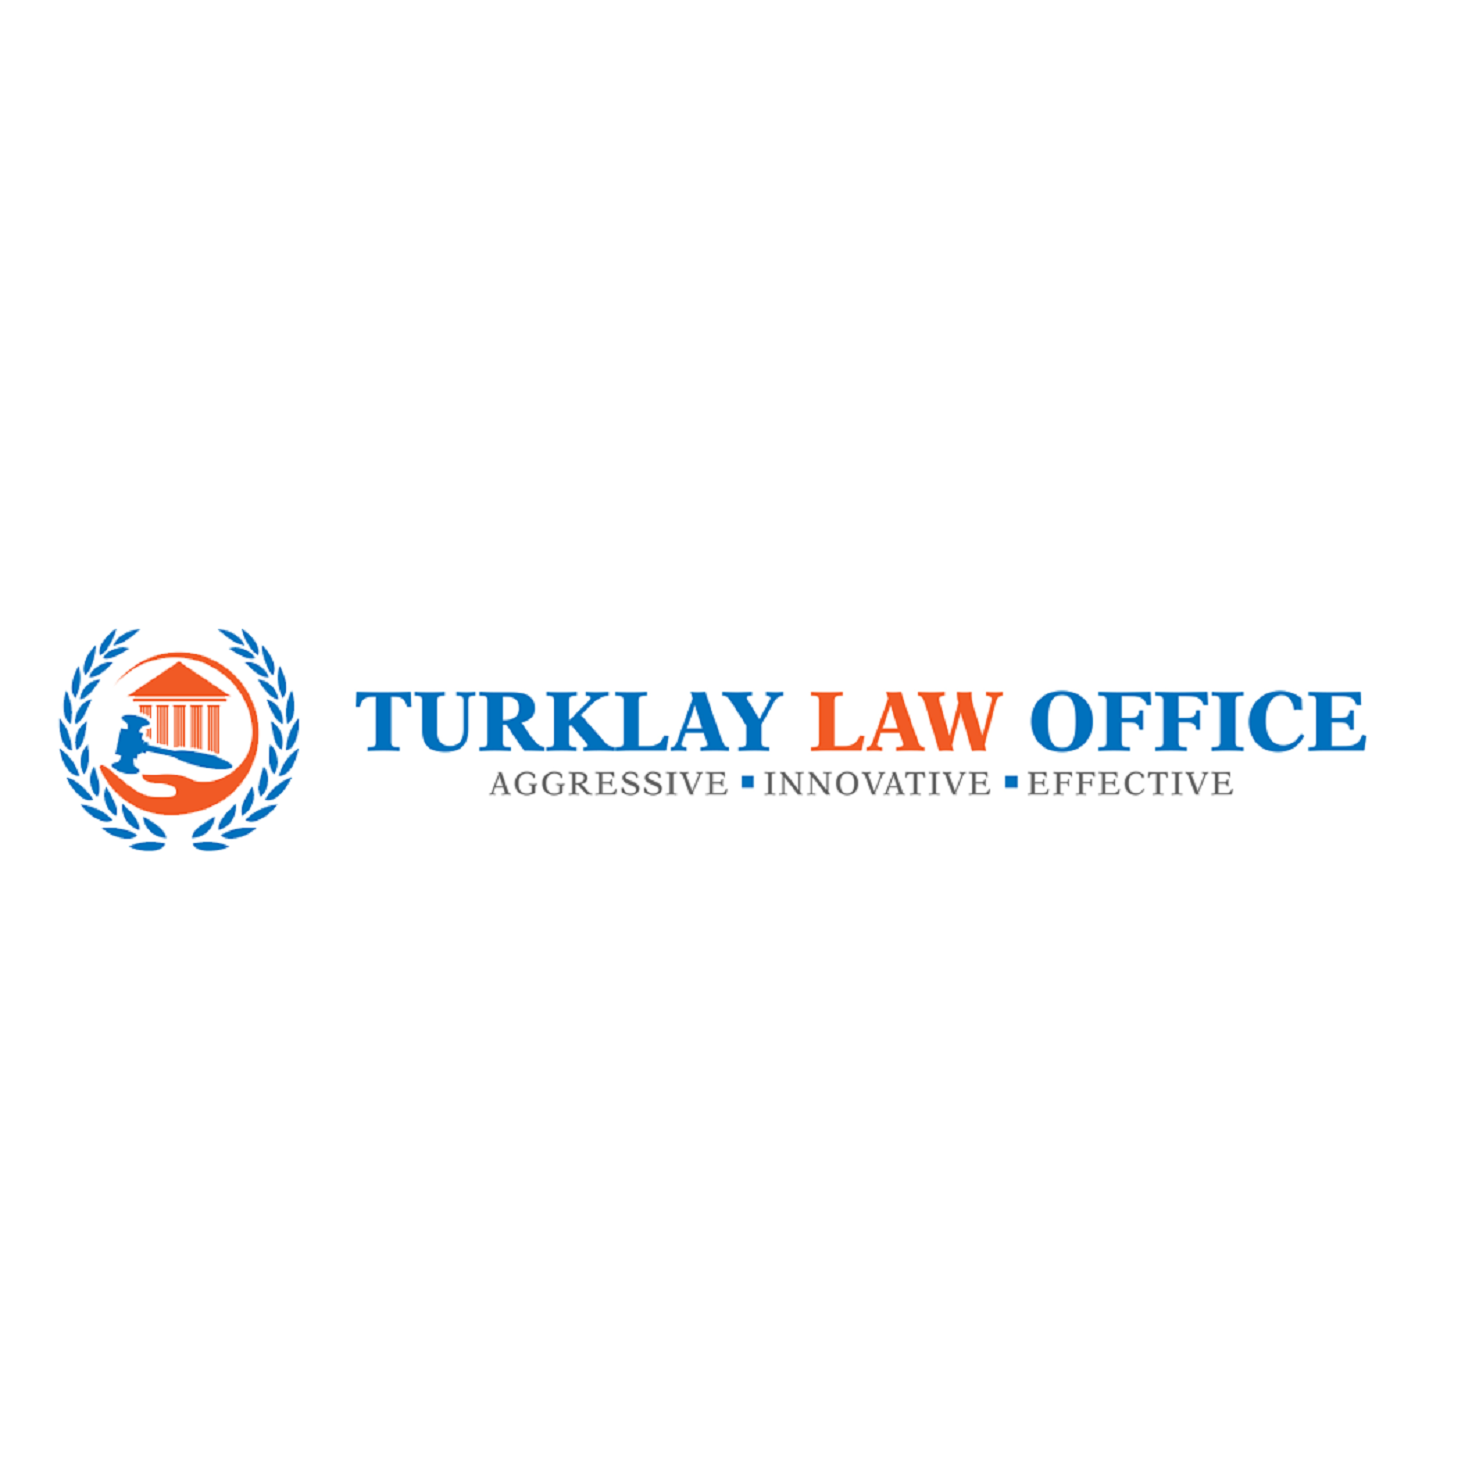 Turklay Law Office